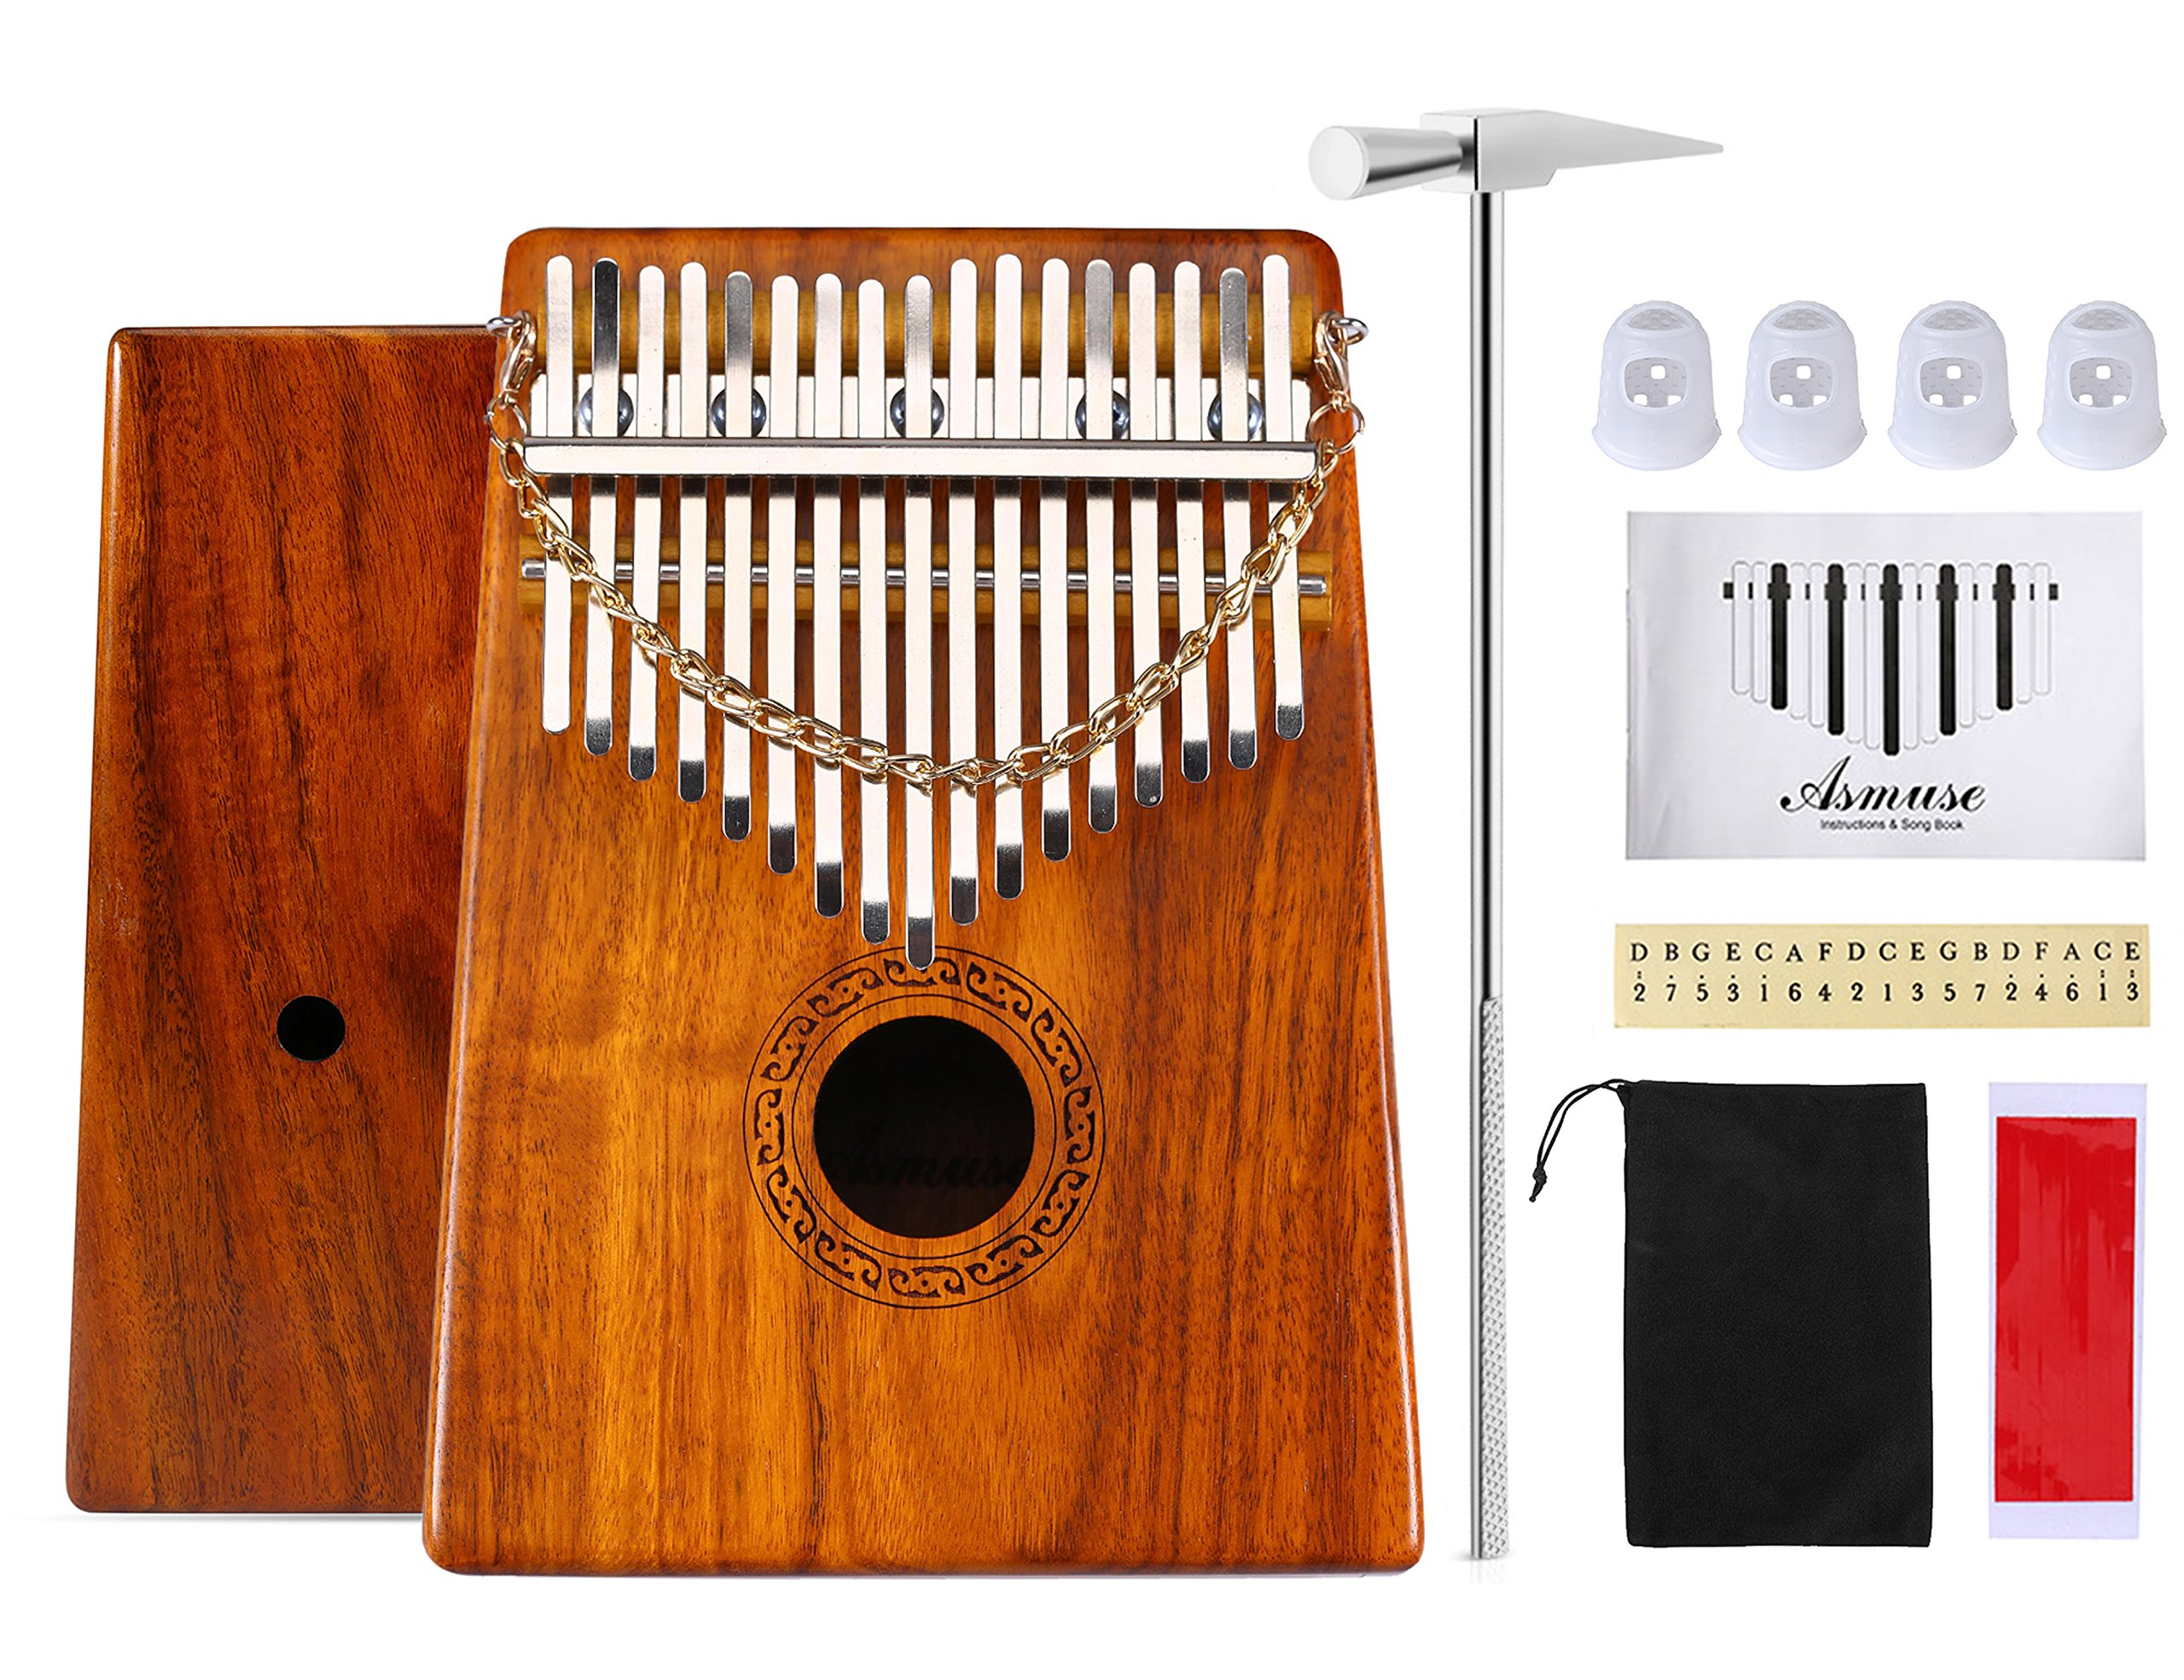 Thumb Piano 17 Keys Kalimba Acacia KOA Body Finger Piano Mbira Sanza Thumb Instrument with Kalimba Songbook 15 Songs Study Guide, Tuning Hammer and 4 Pcs Finger Thumb Picks(Solid KOA Wood)